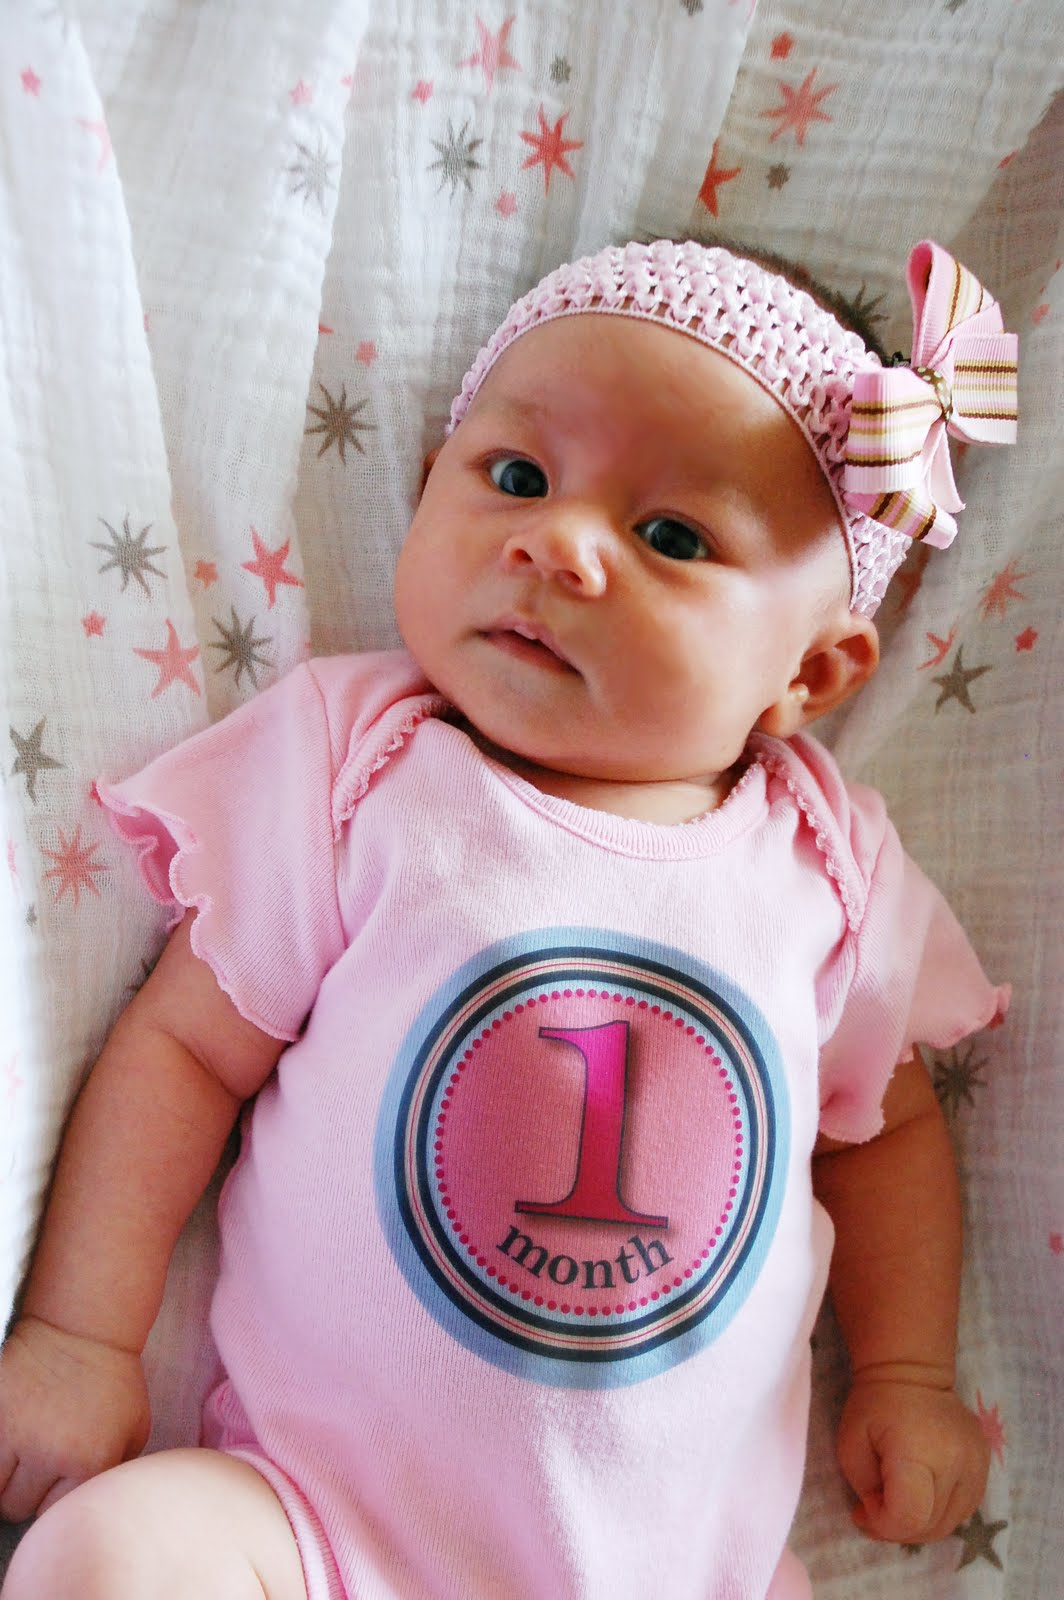 What Is the Average Height and Weight for Babies? After learning fetal weight chart while your baby is still in your womb, as well as how to understand the baby growth chart, to pounds. 3 Months: Girls. Boys. Height. to inches. to inches. Weight. to pounds.